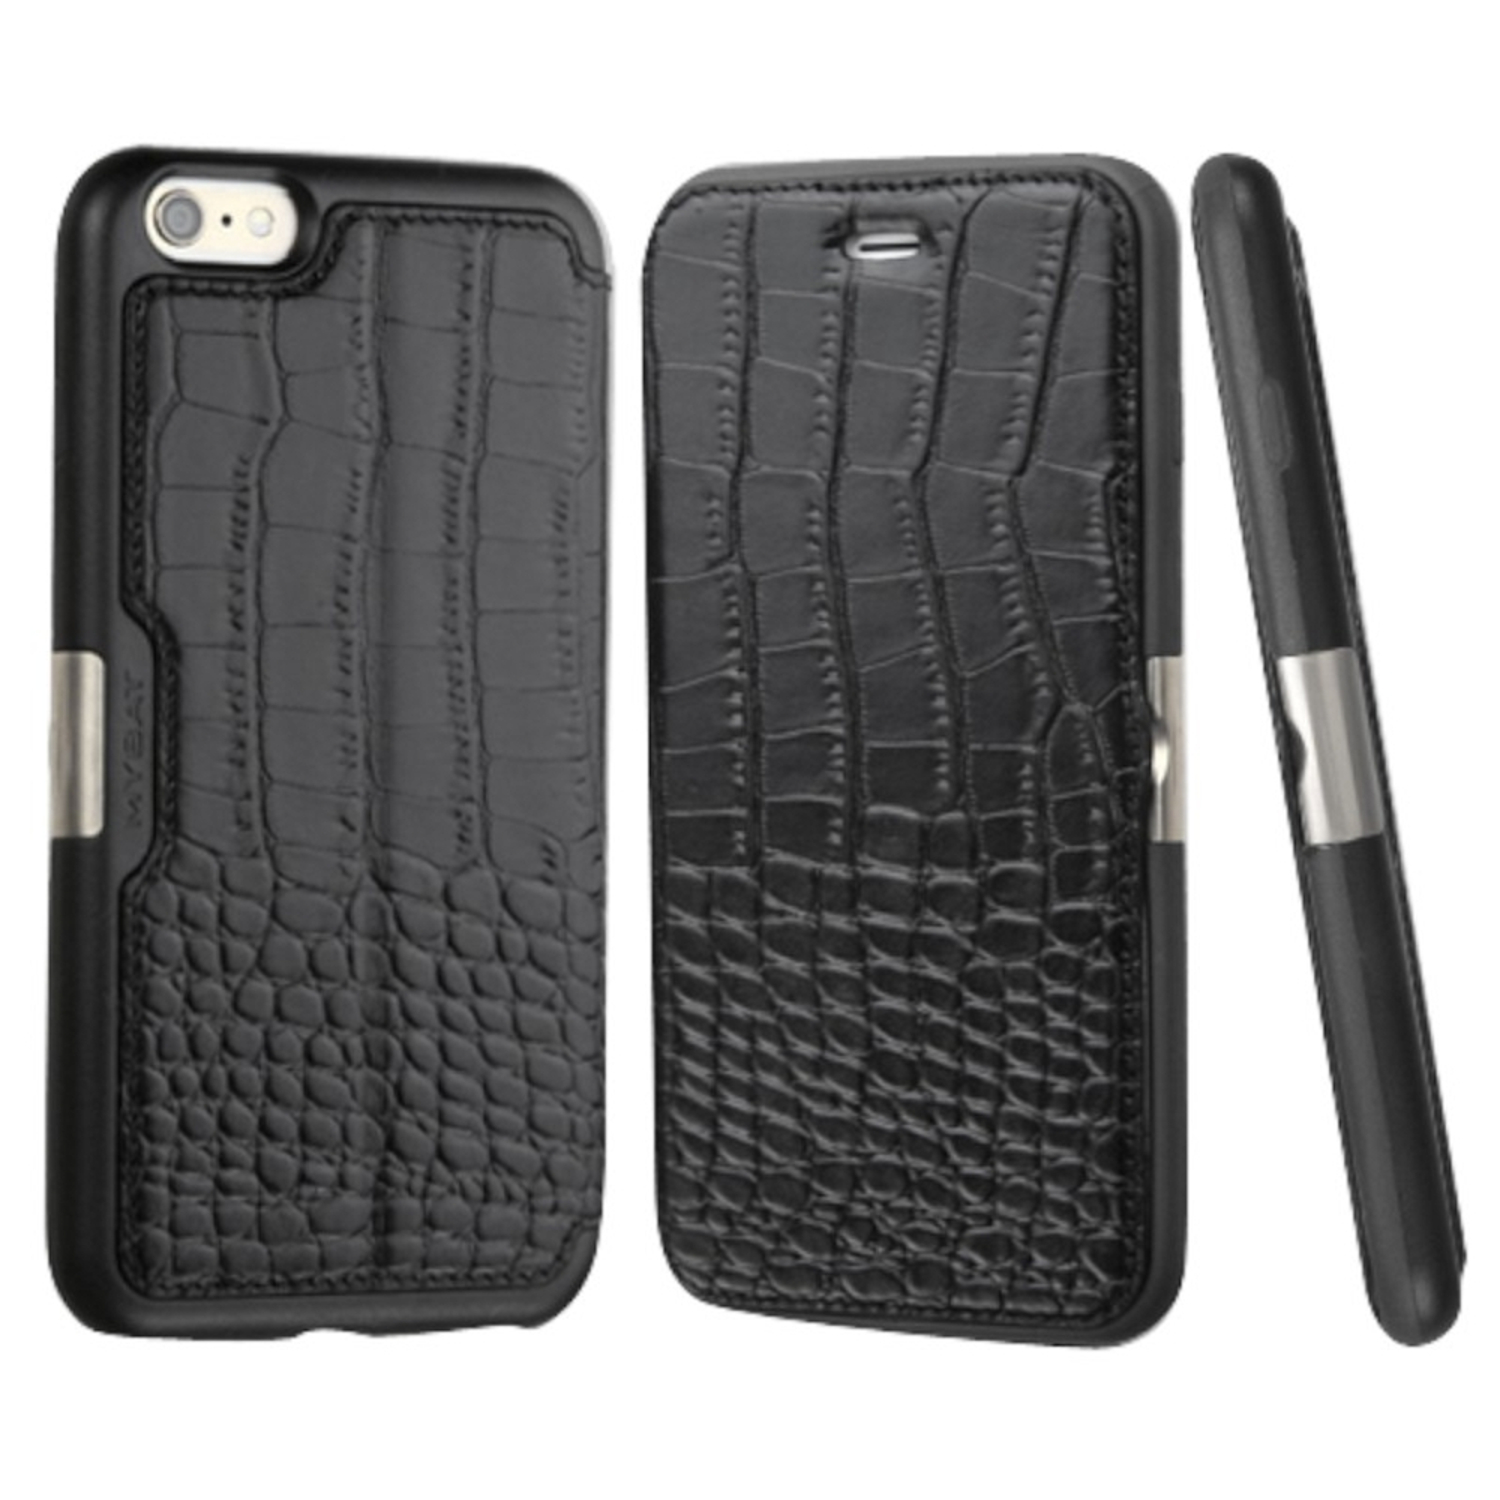 Insten Crocodile Folio Genuine Leather Case w/card holder For Apple iPhone 6 Plus/6s Plus - Black (Christmas Gift Idea)